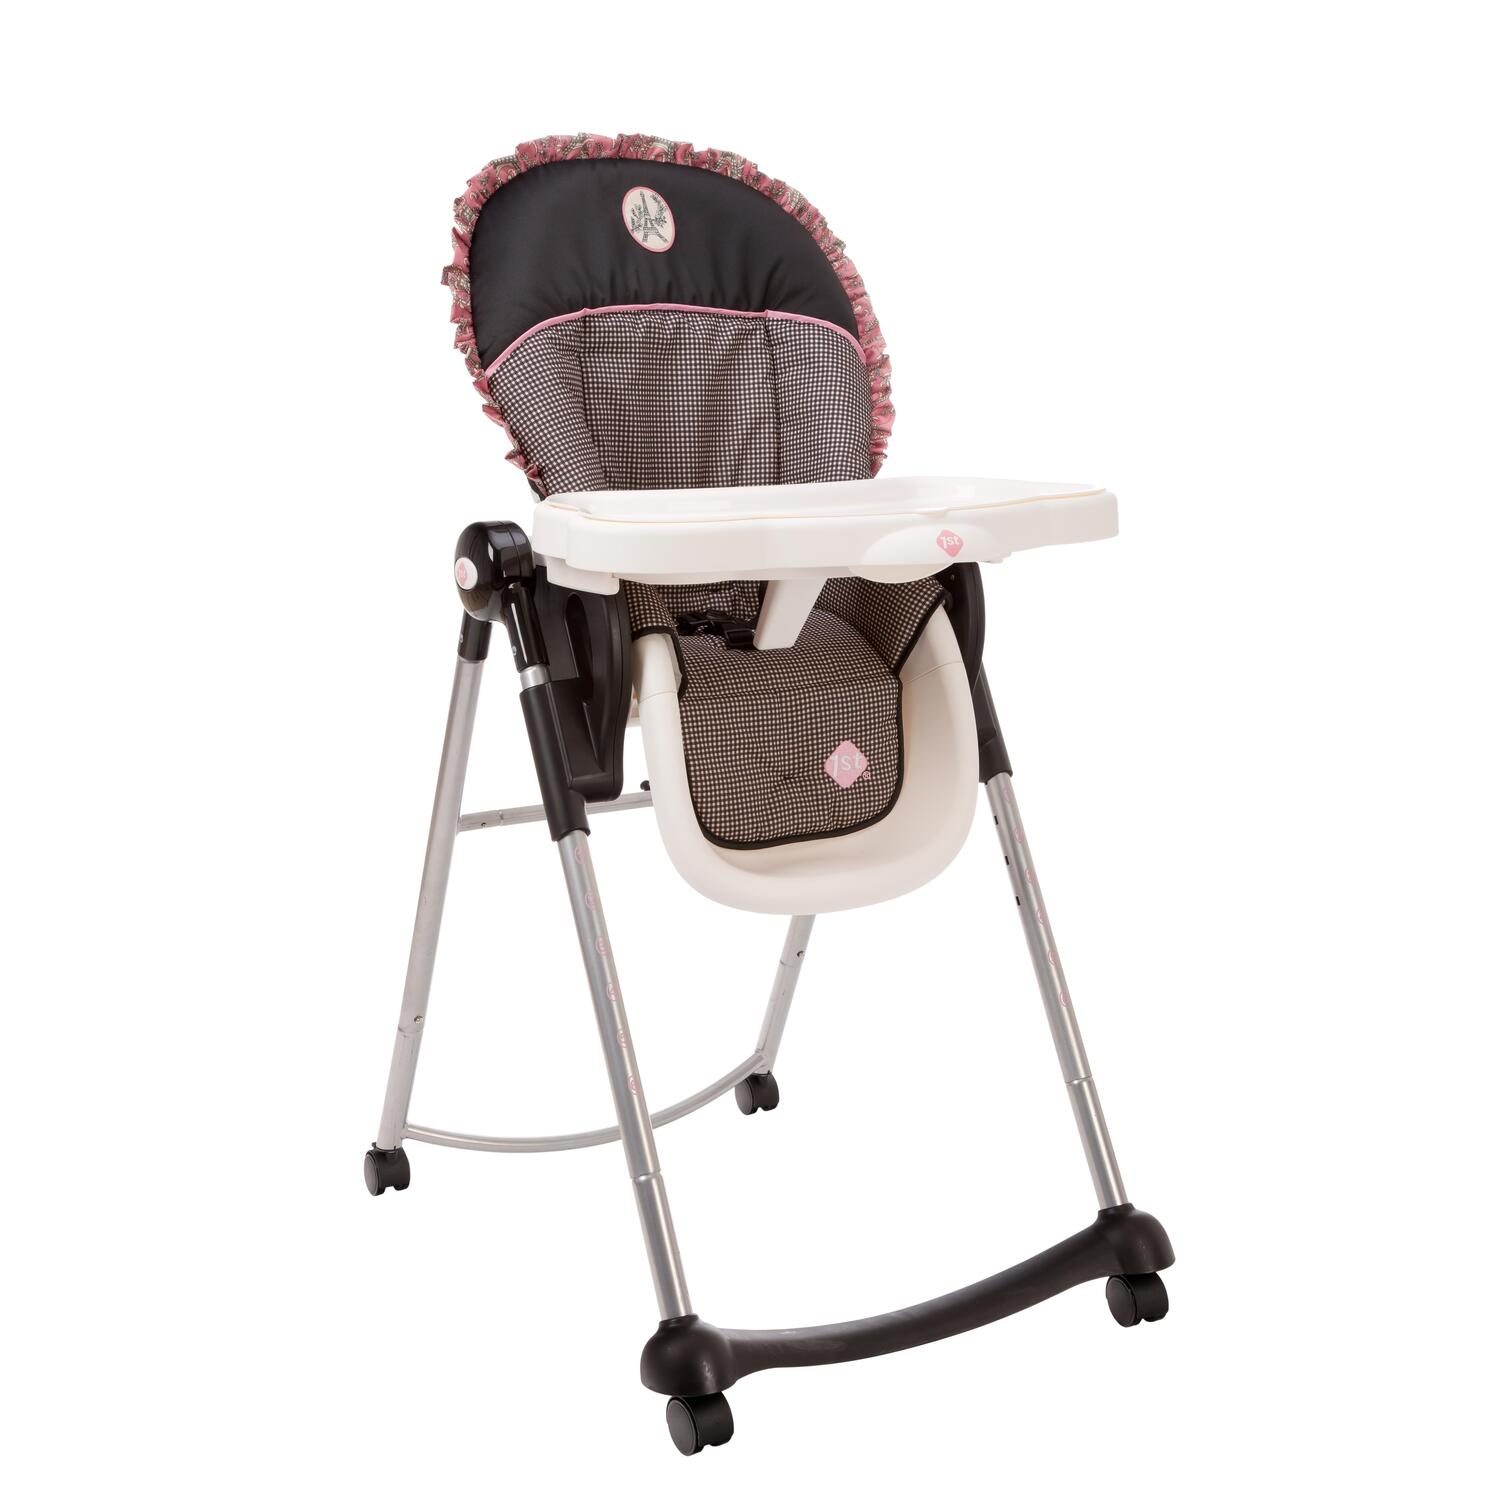 safety 1st high chair recall baby shower rental boston ma adap table w ruffle